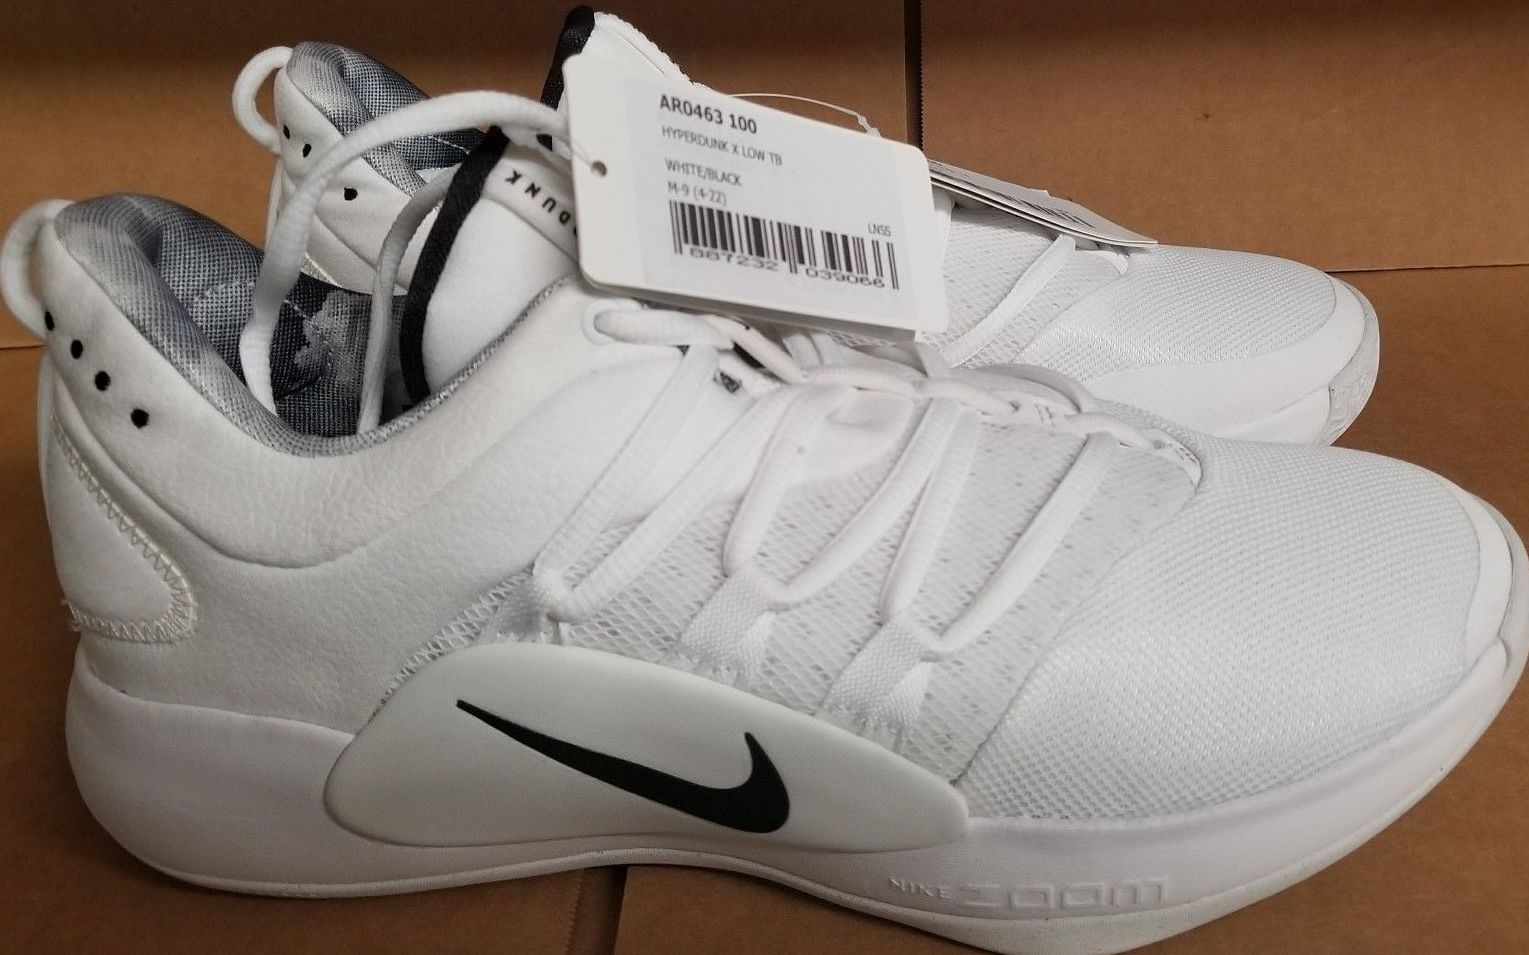 f7924230c59a Nike Hyperdunk X Low TB White Black AR0463-100 Images